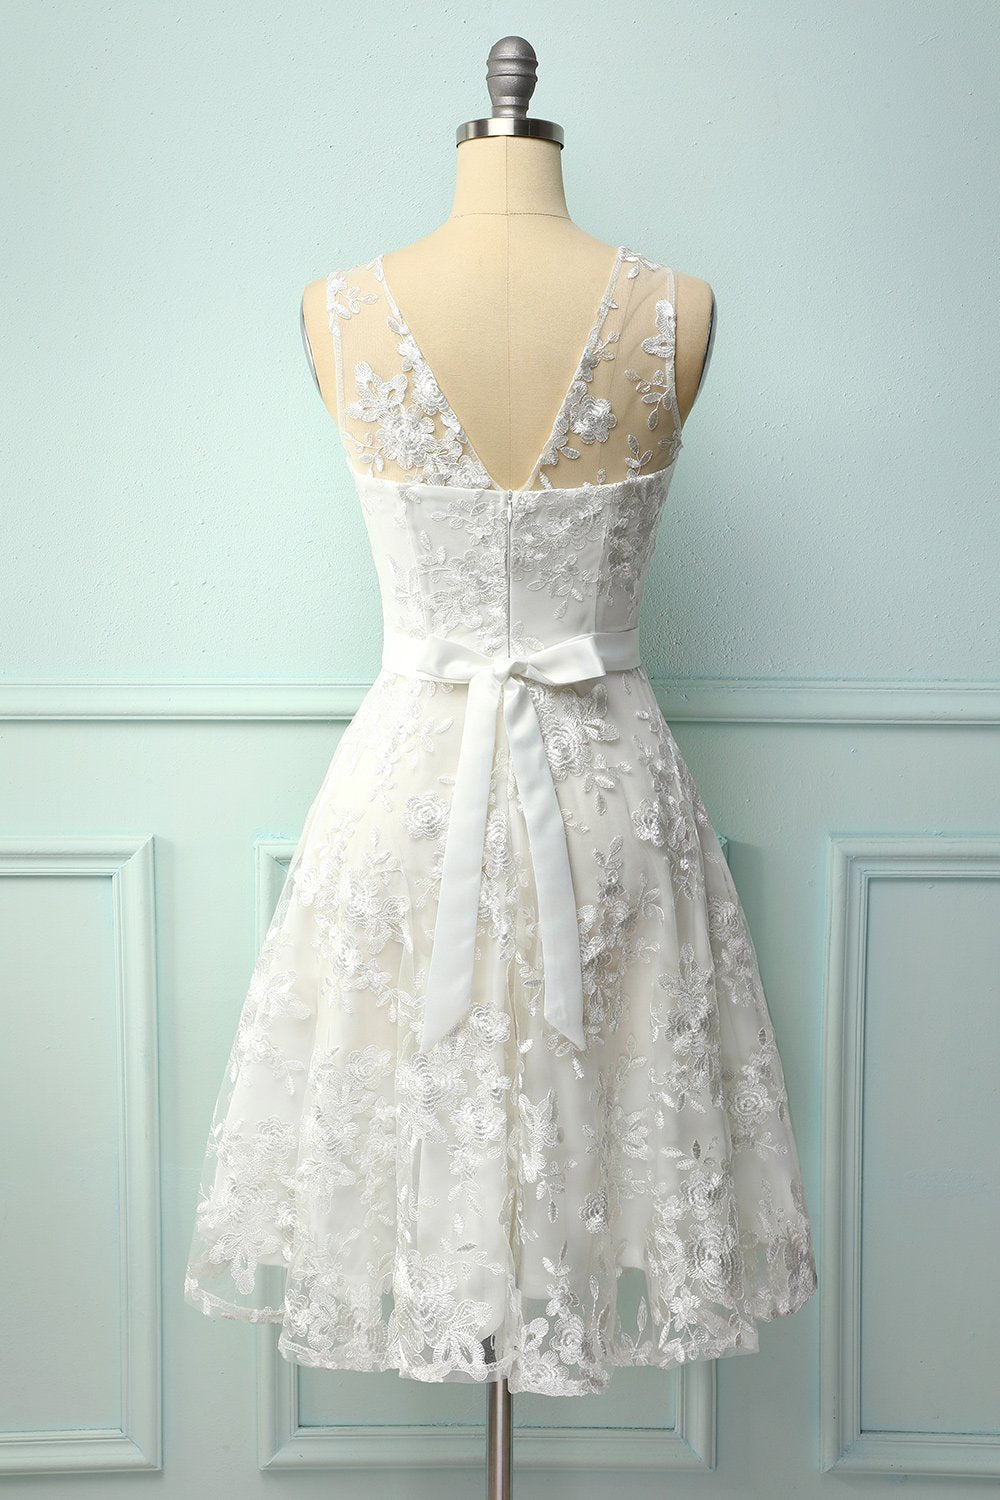 White Lace Dress with Bow